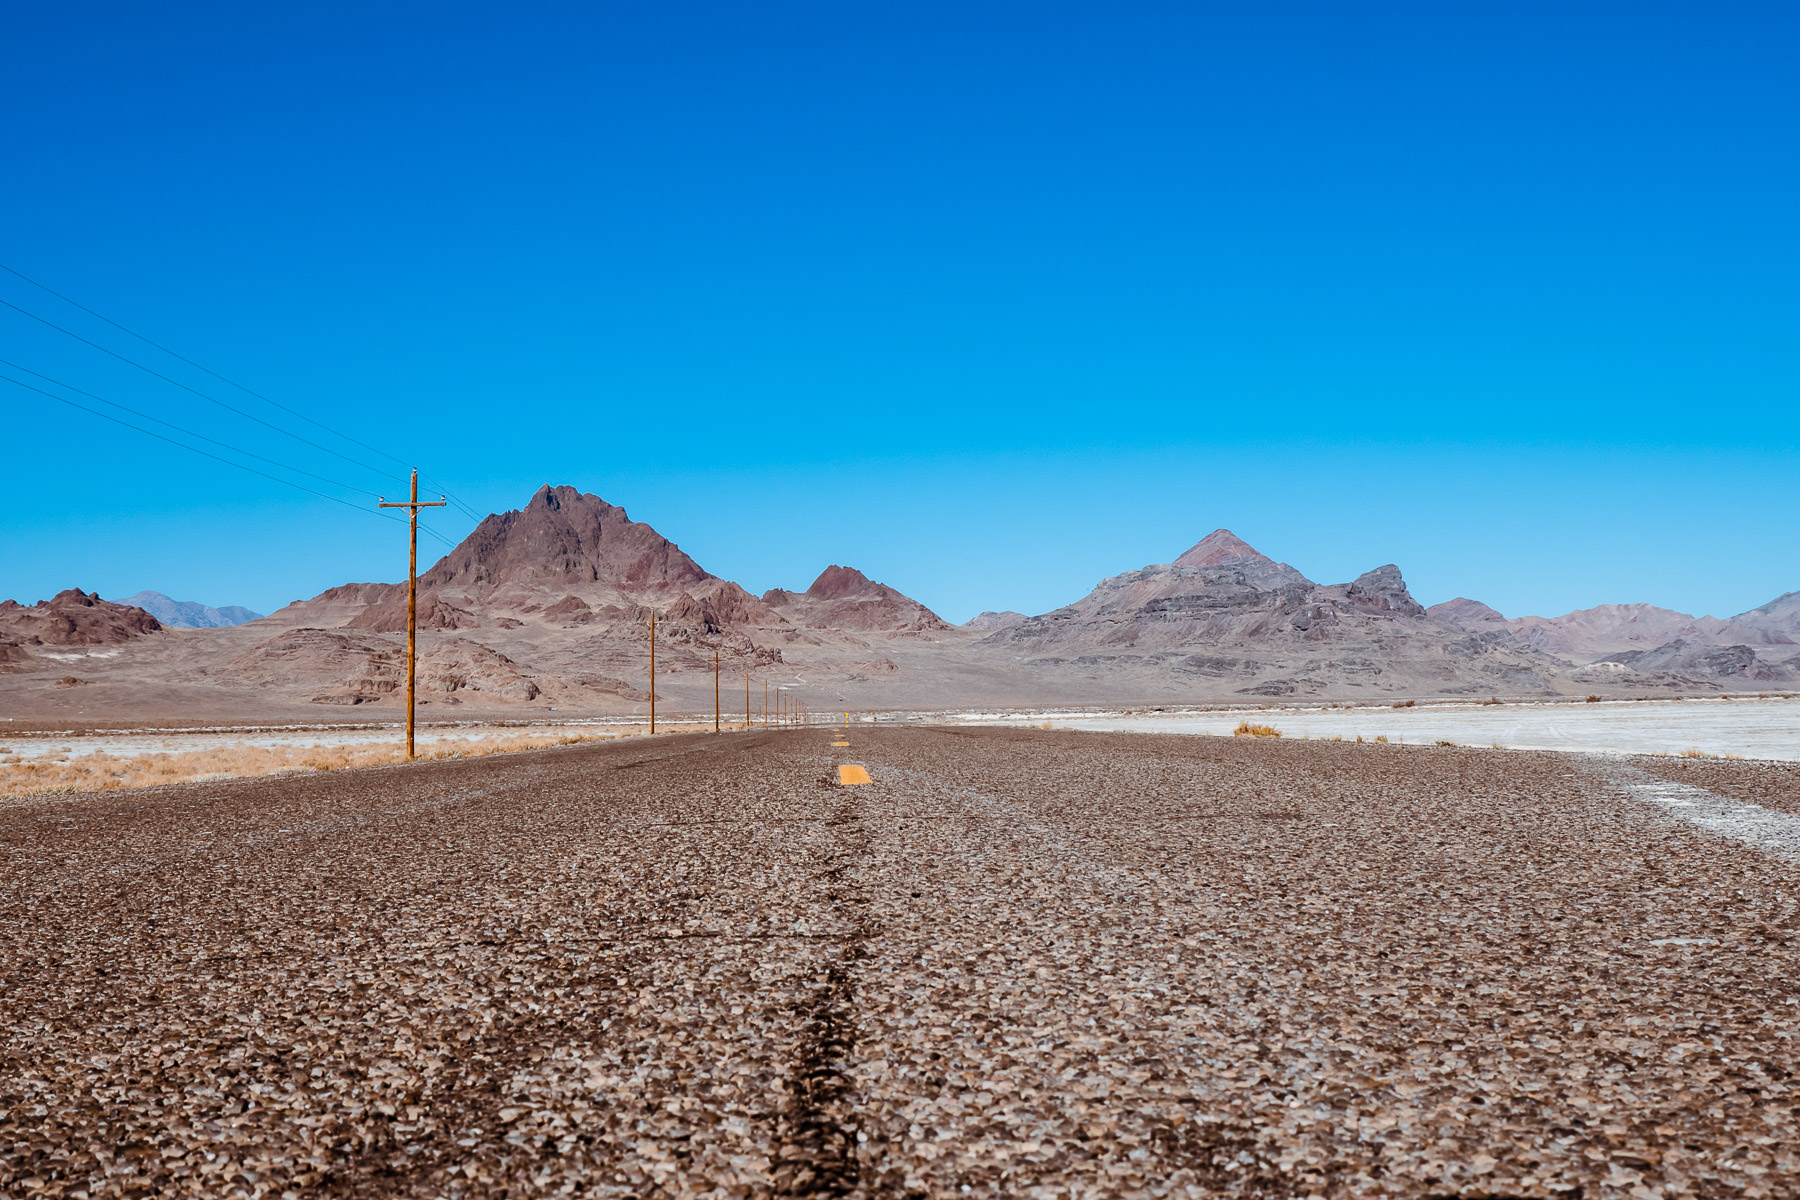 A road leads towards the mountains along the Utah/Nevada border at the Bonneville Salt Flats.